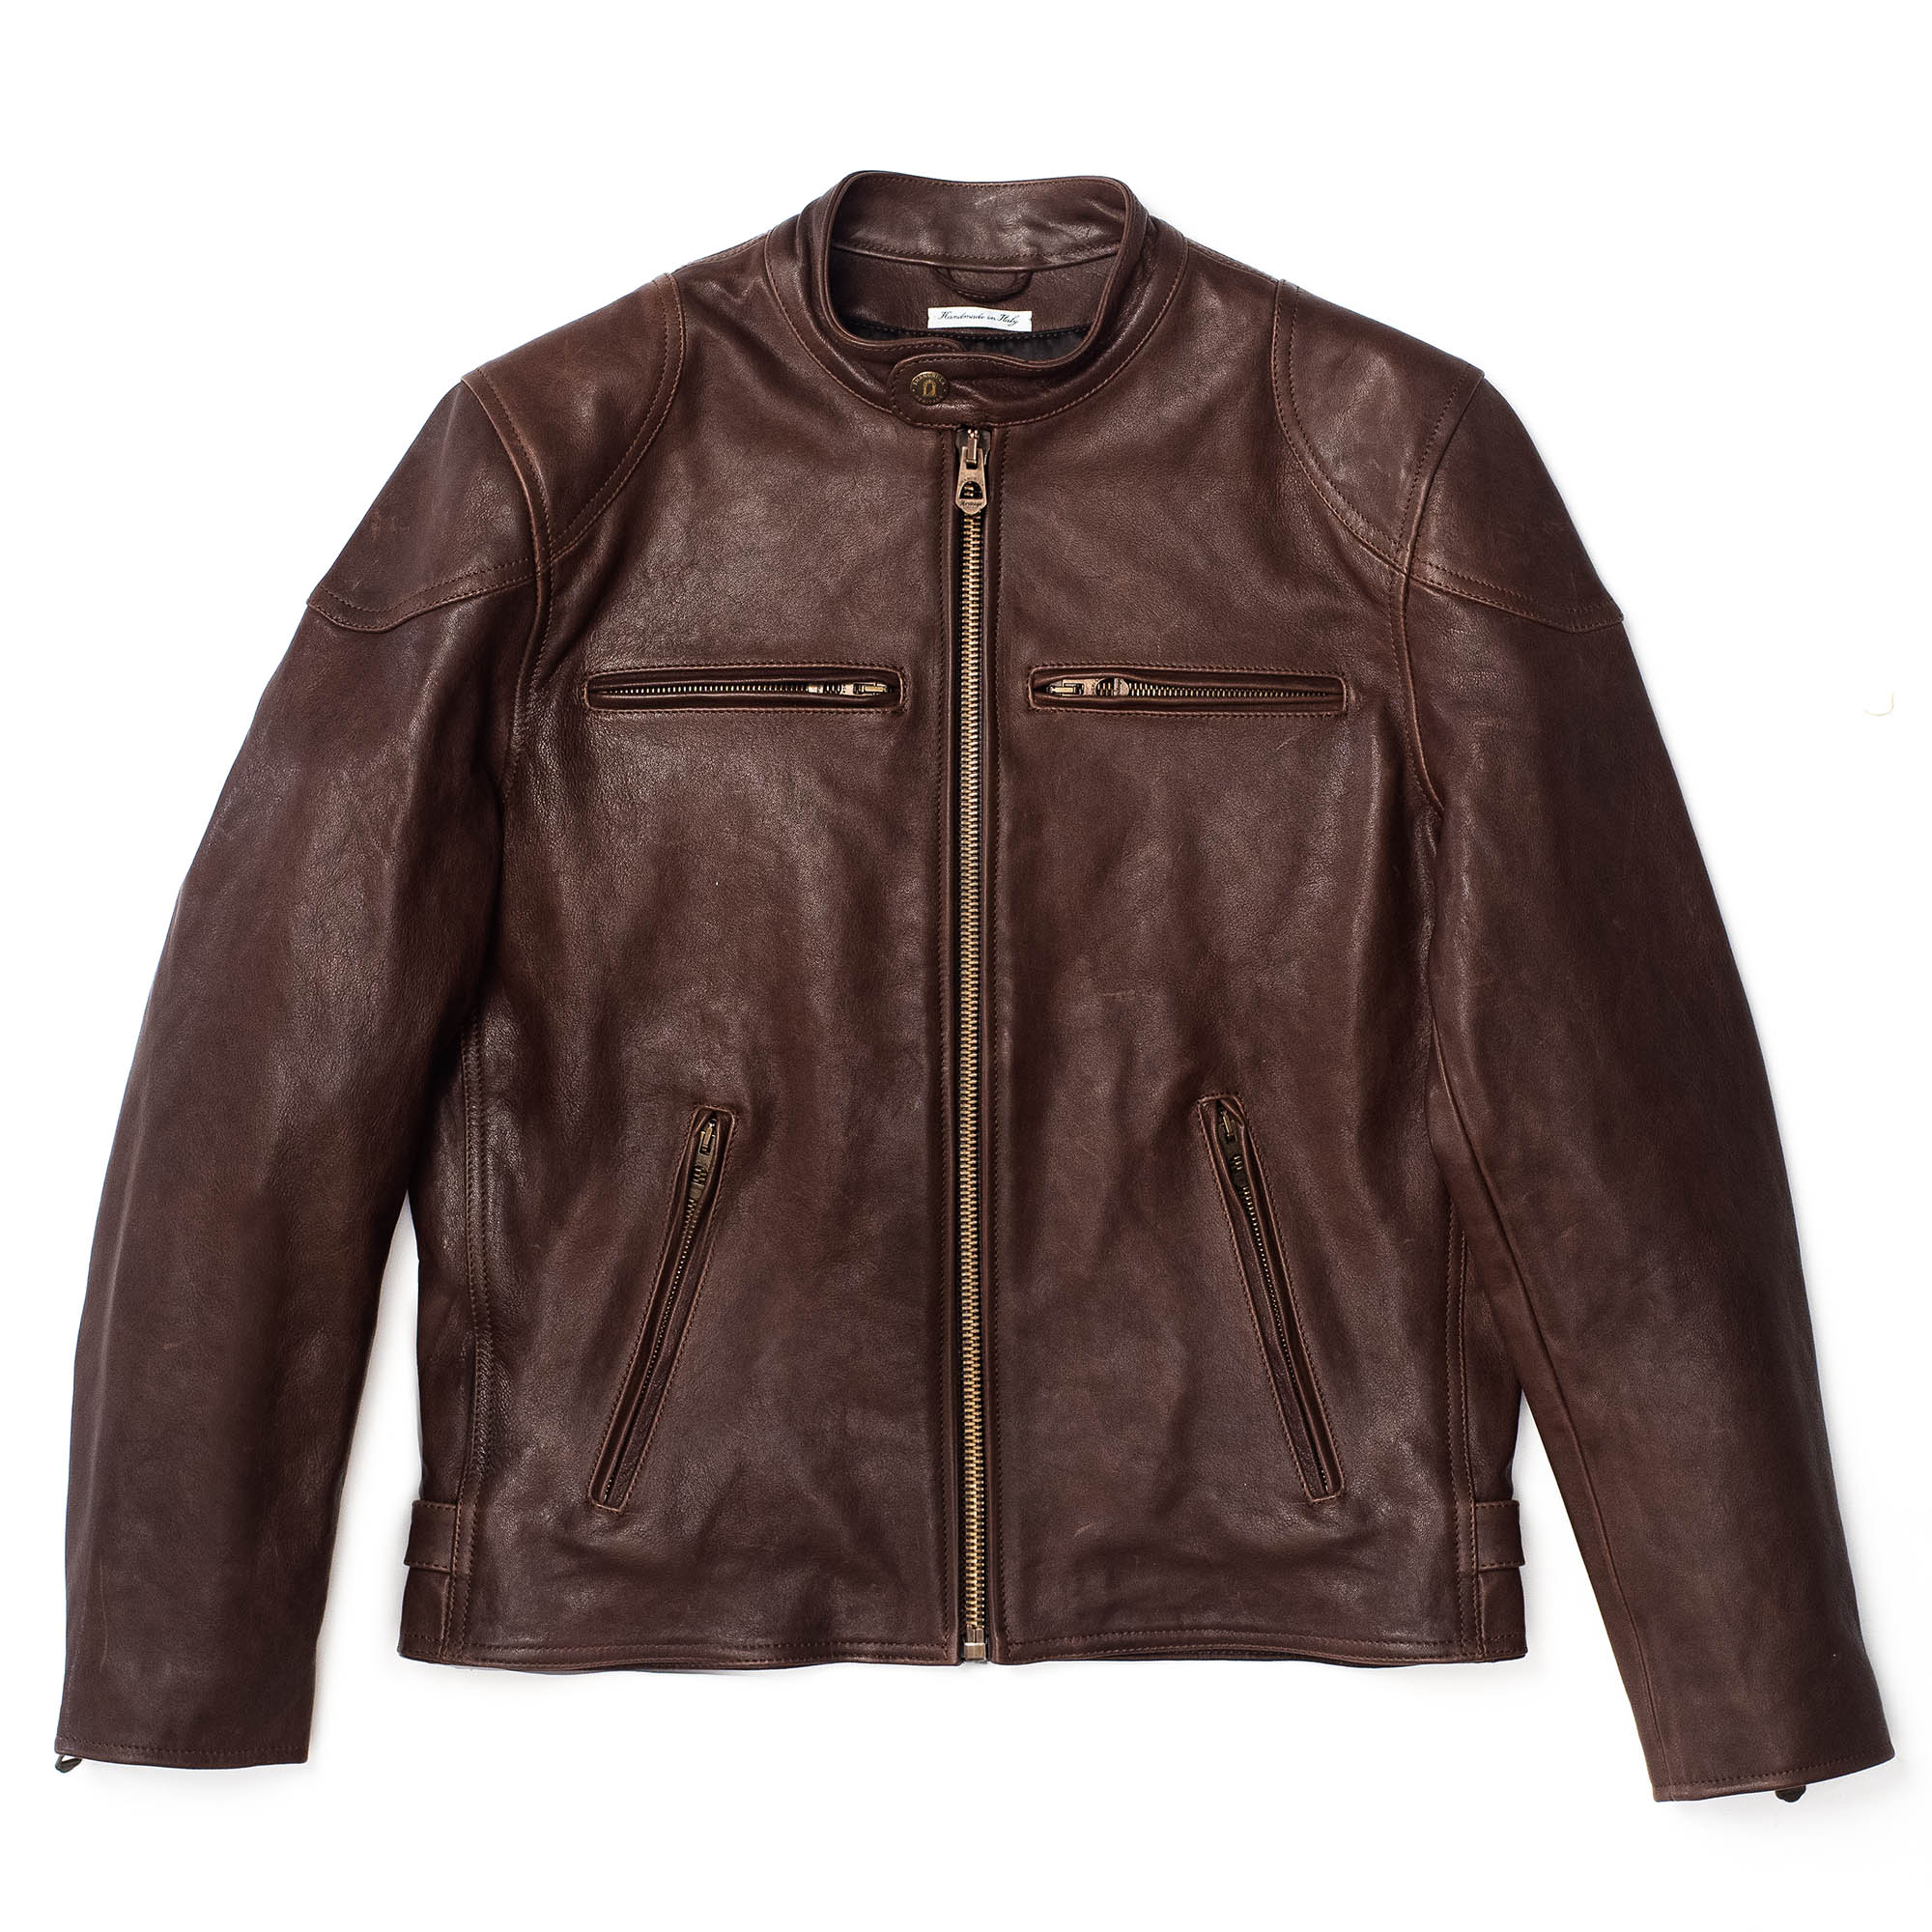 shangri-la-heritage-cafe-racer-brown-lambskin-jacket-still-life-new-front